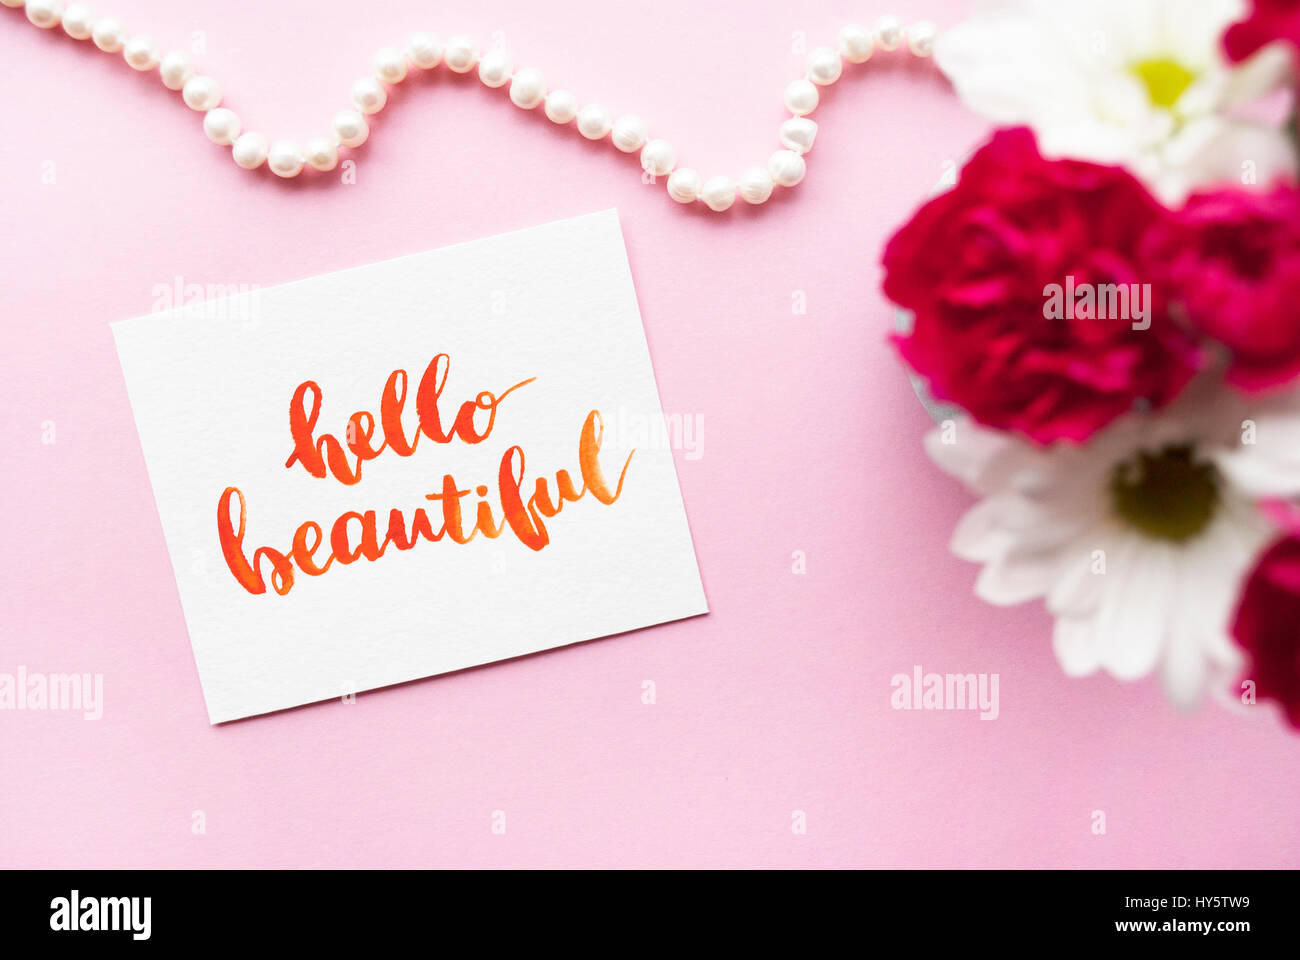 Inspirational quote Hello beautiful written in calligraphy style with watercolor. Composition on a pink background. - Stock Image